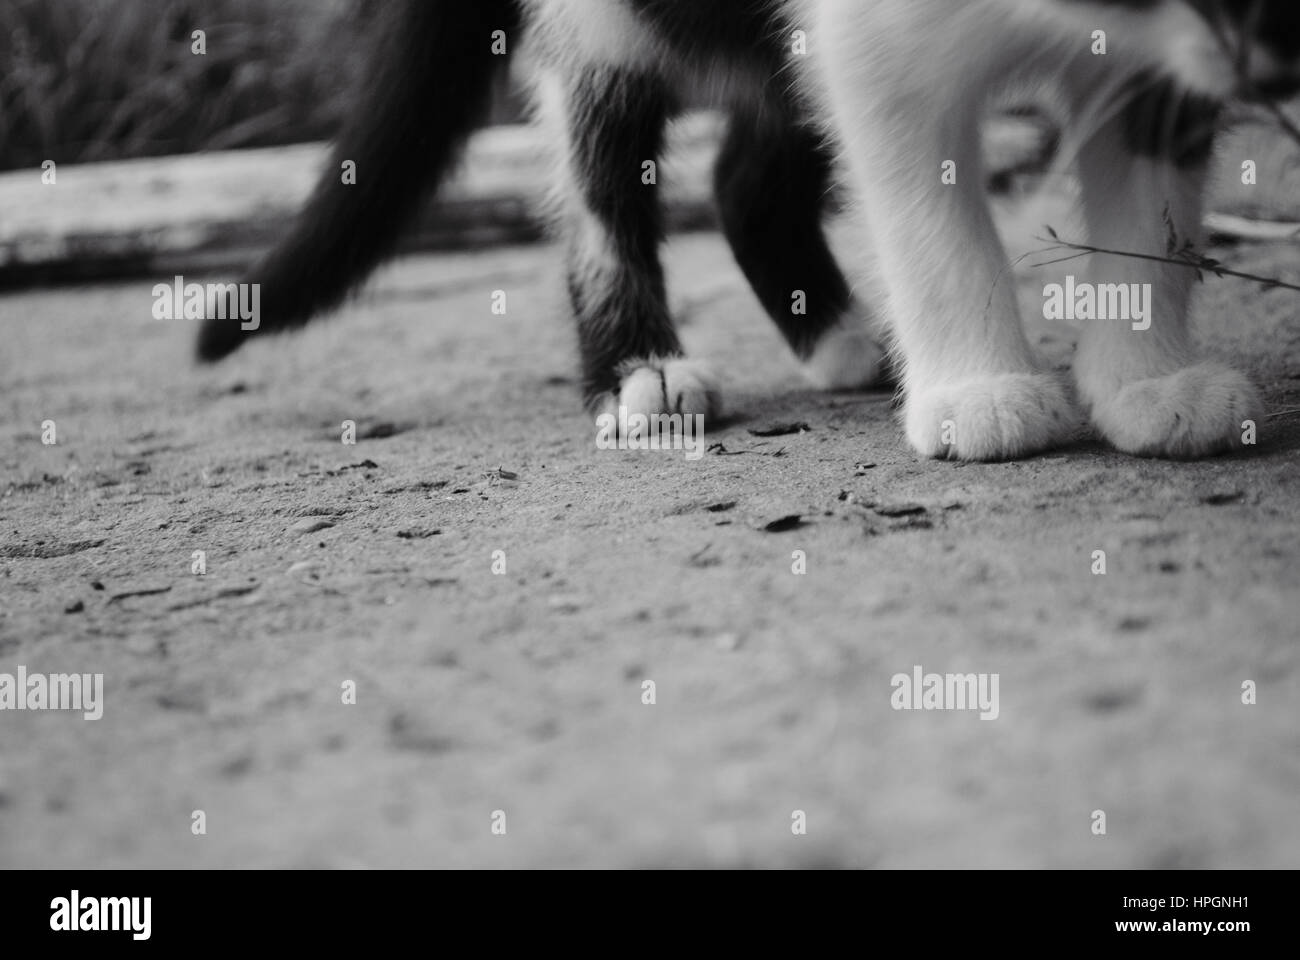 Stealthy cat, bw photo of cats paws. - Stock Image